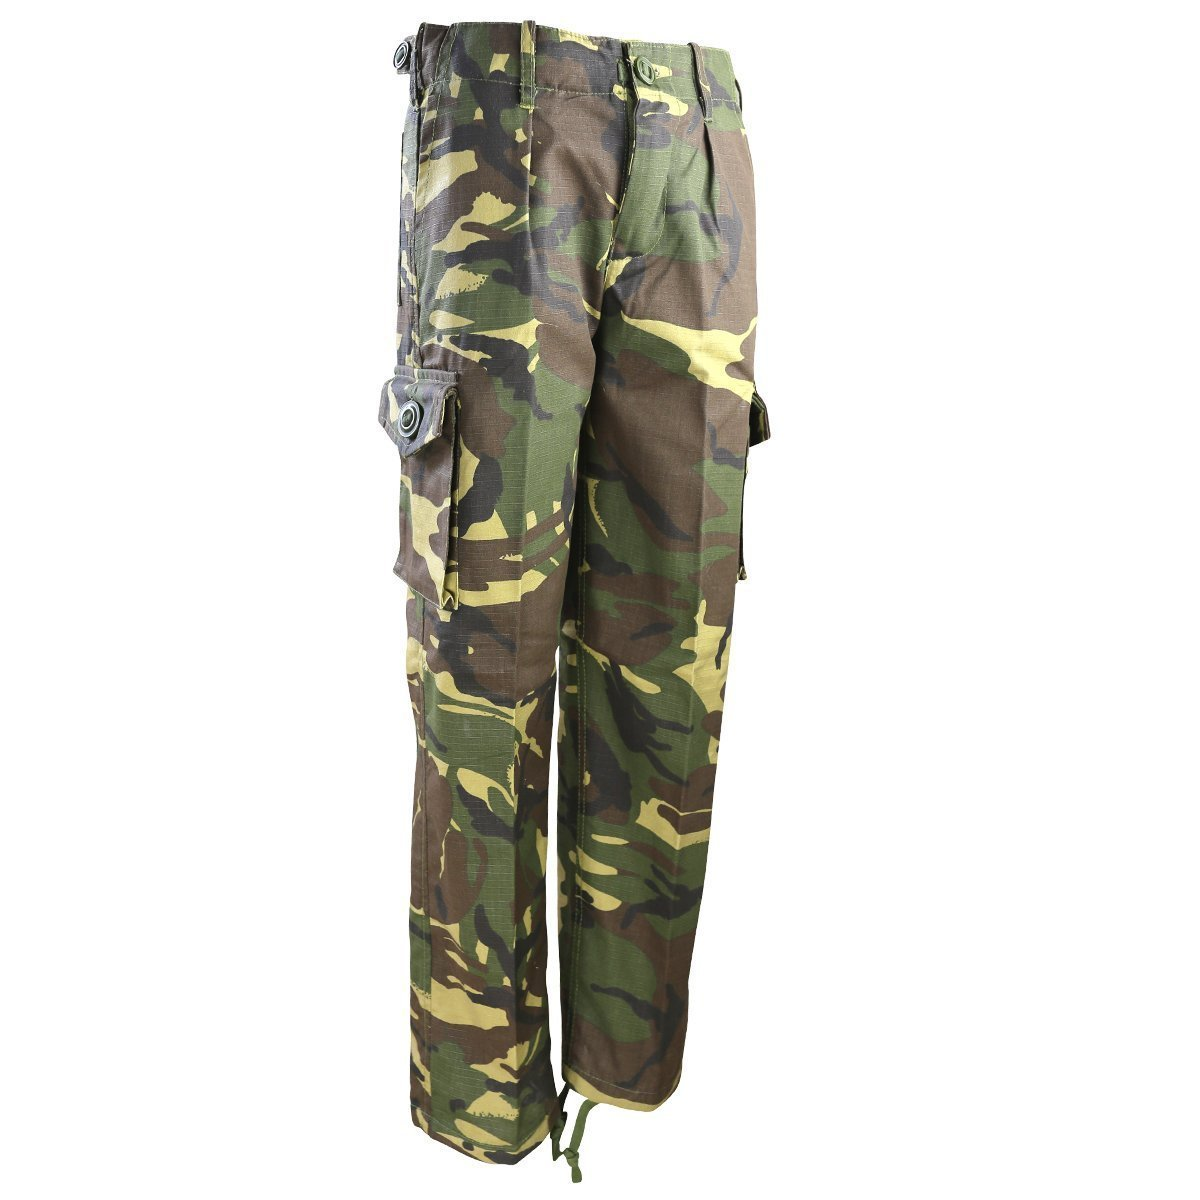 Kombat UK Children's Combat Trousers - Bear Essentials Clothing Company